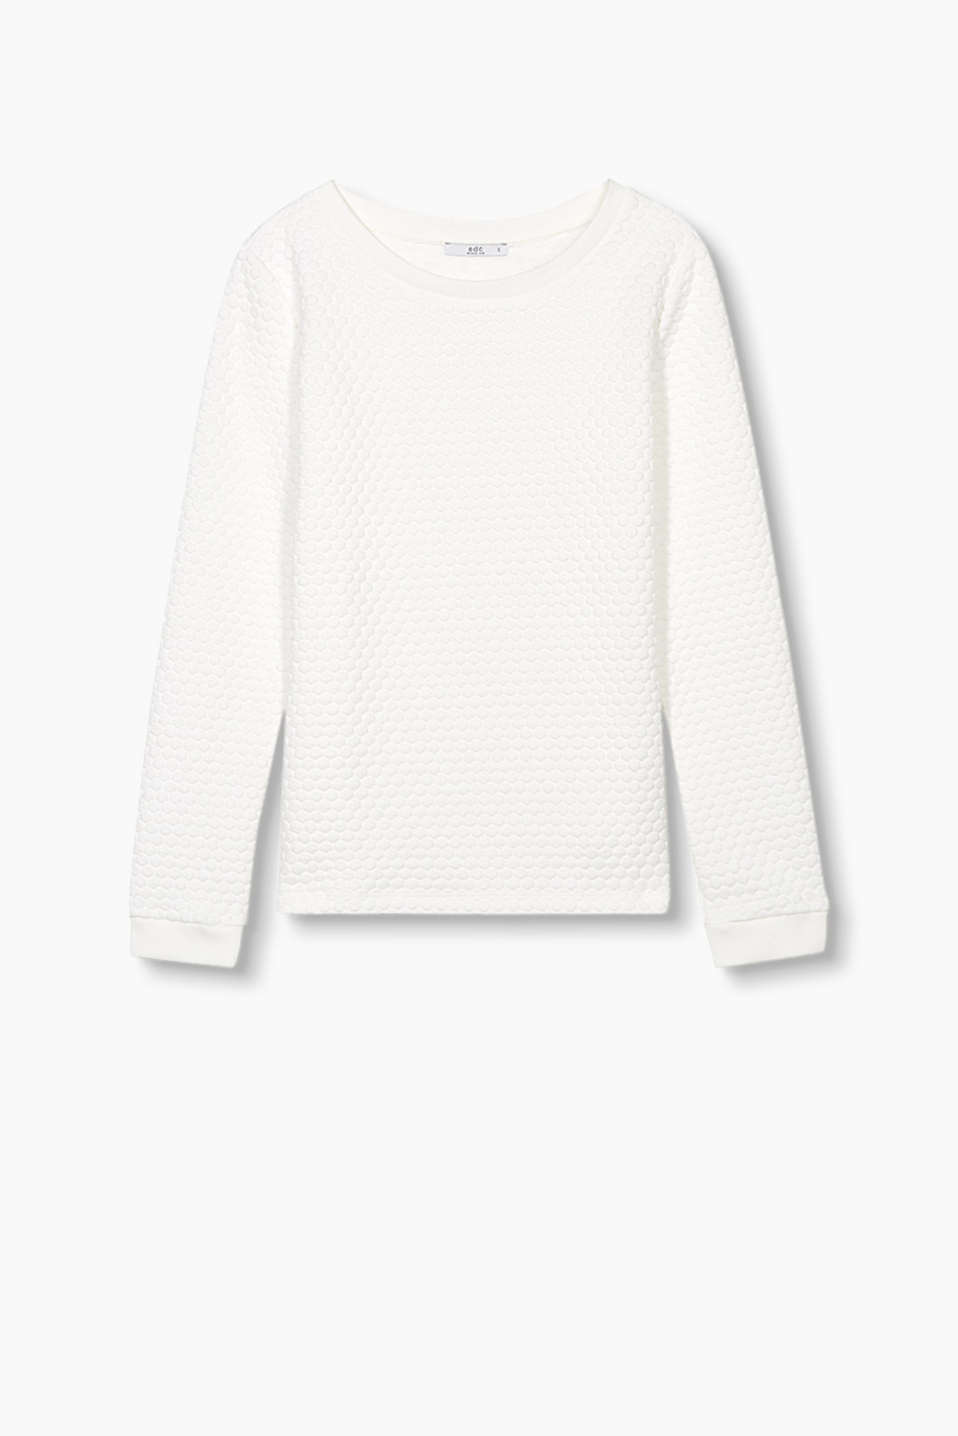 Sweatshirt in stretchy blended cotton with a 3-D texture